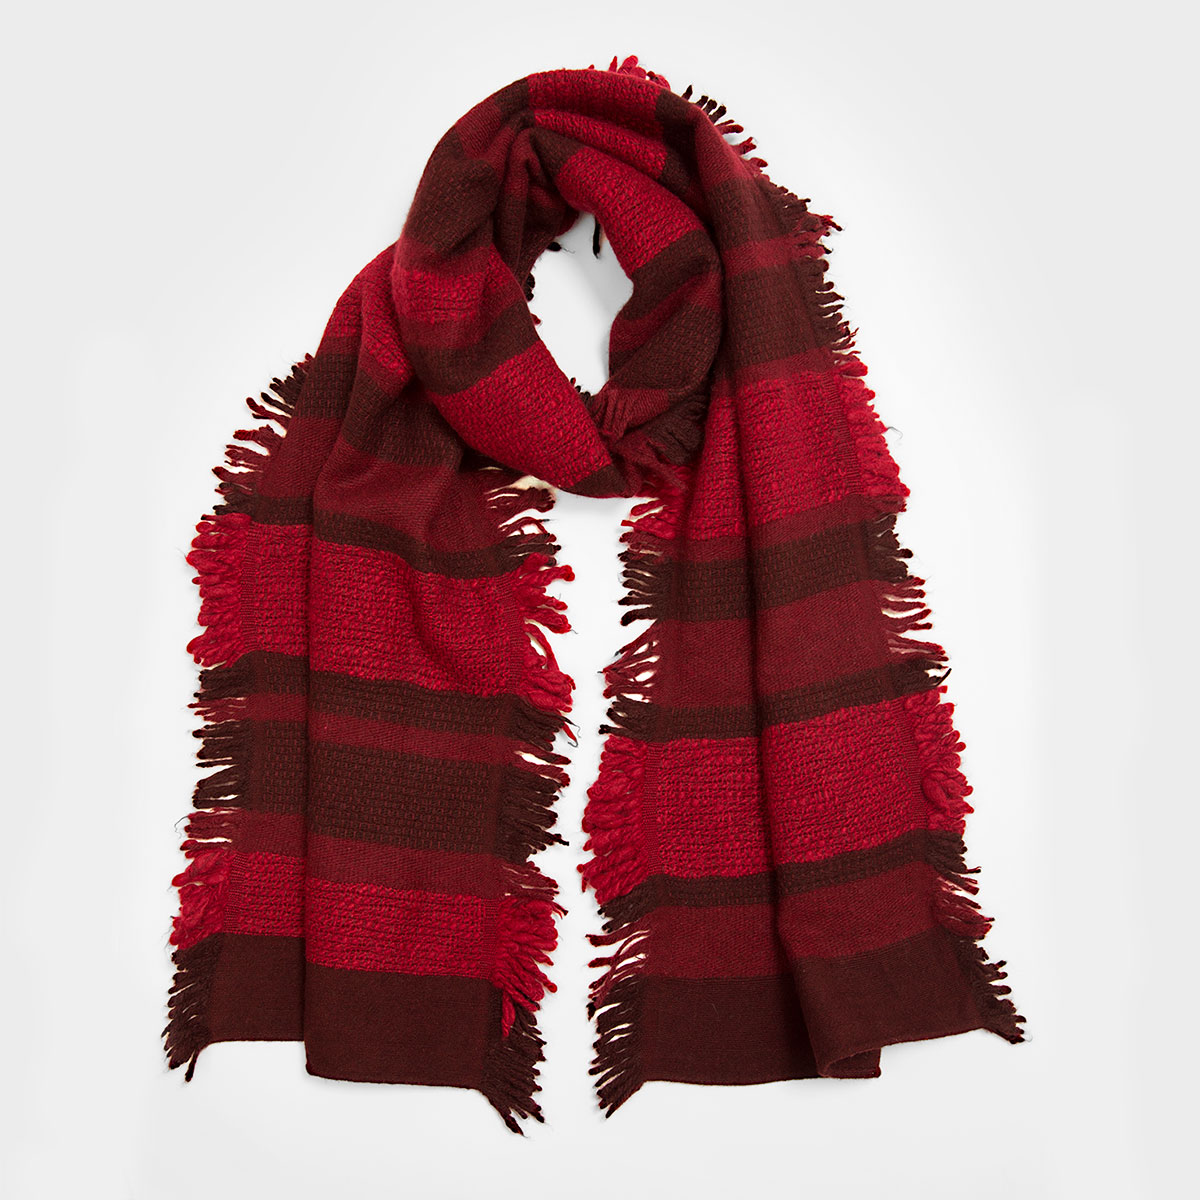 The stunning array of crimson, scarlet, and burgundy stripes transform this classic fall accessory into a covetable statement piece. Its 100% yak wool composition is the new standard in luxury fibers-- soft as cashmere, but with superior warmth and durability.     Red Nomad Steppes Scarf , $215.    Shop Norlha.